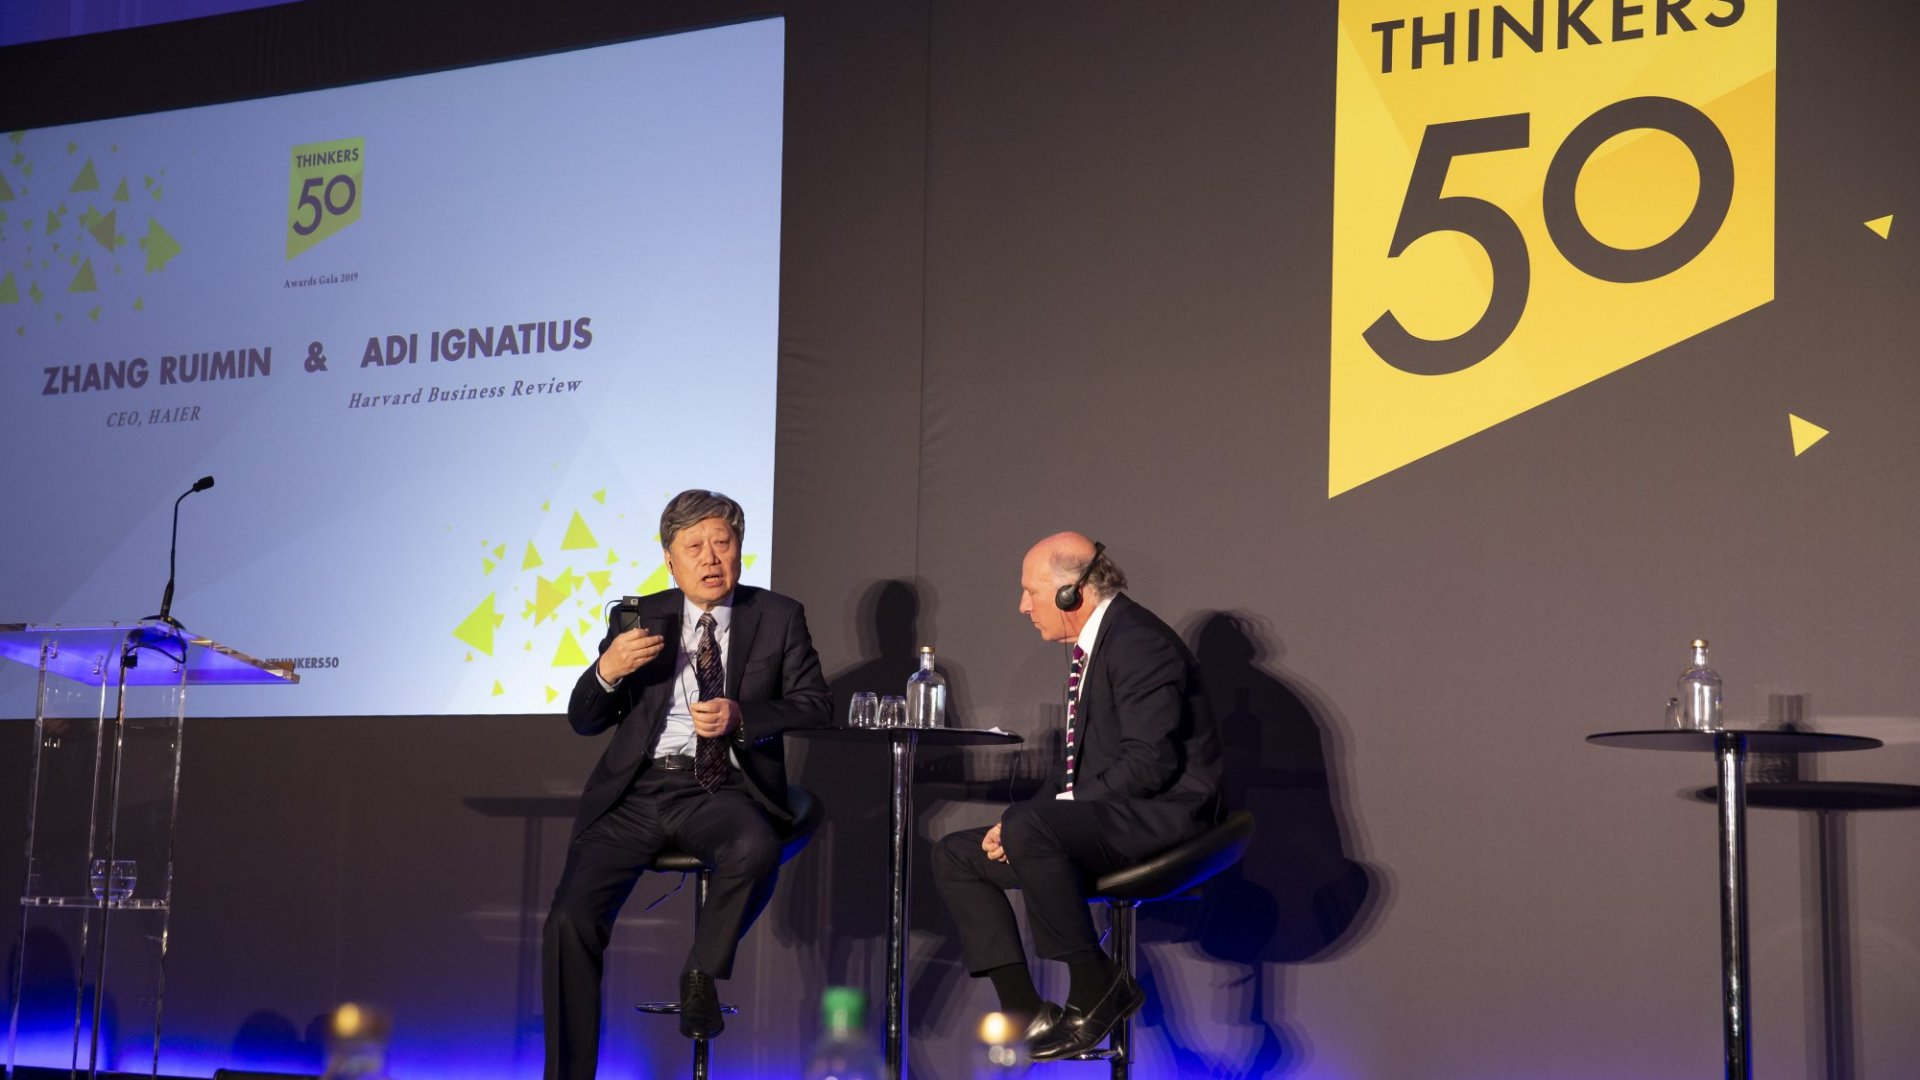 Want To Thrive? Thinkers50 Launches Innovative New MBA